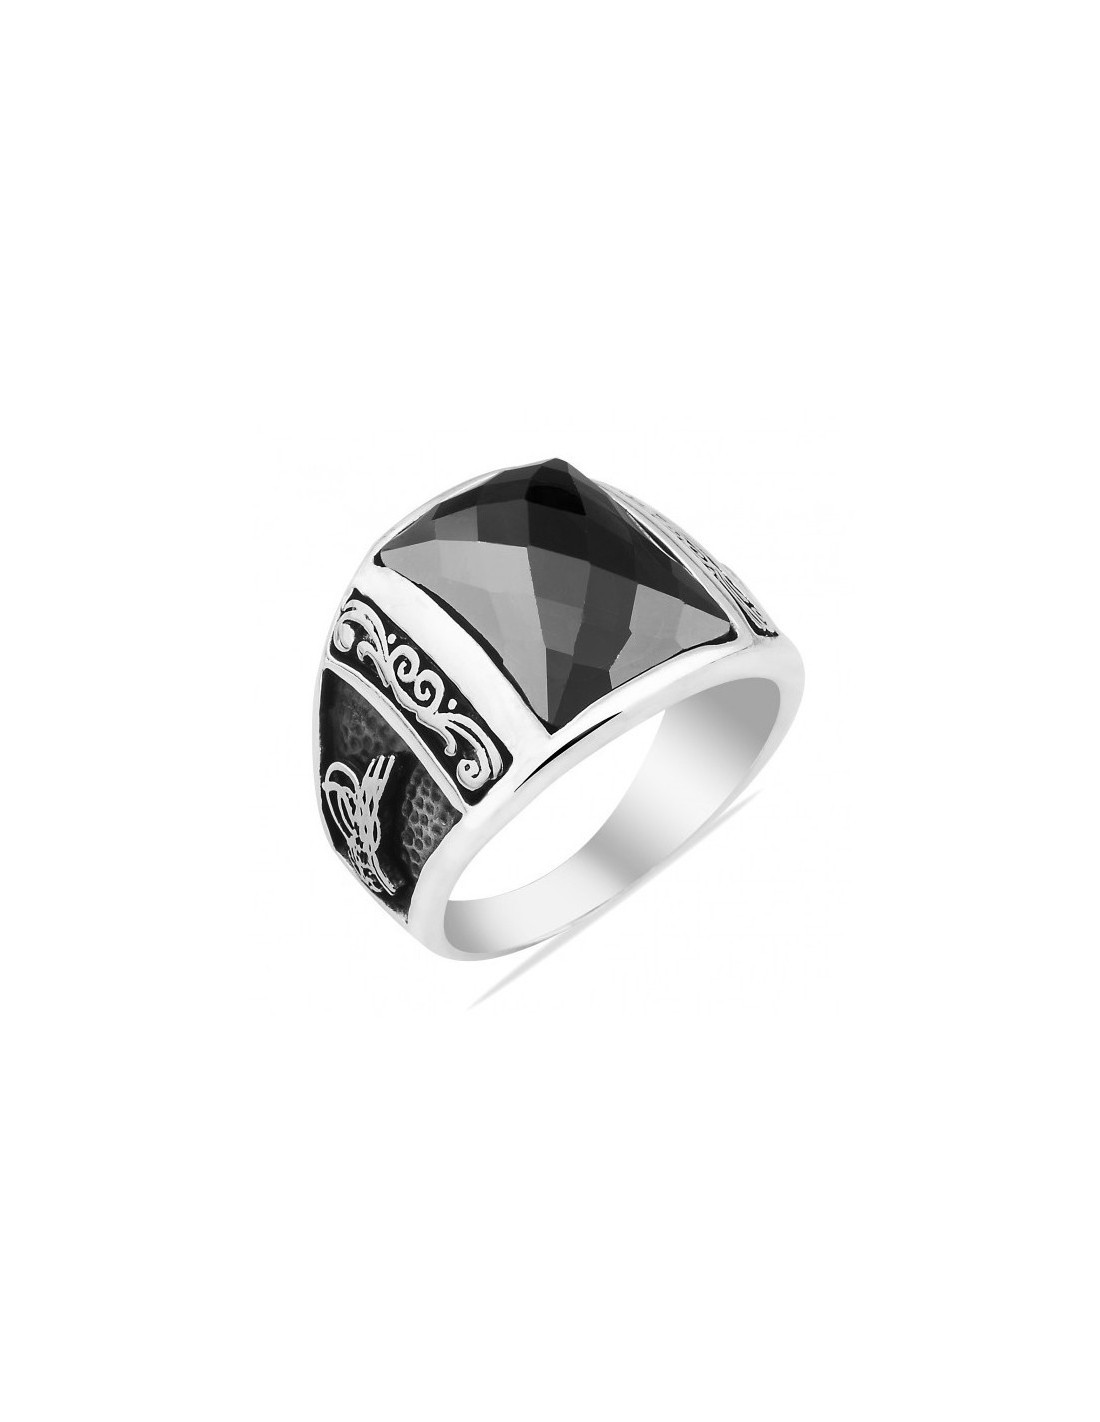 black onyx mens ring in sterling silver from turkstyleshop